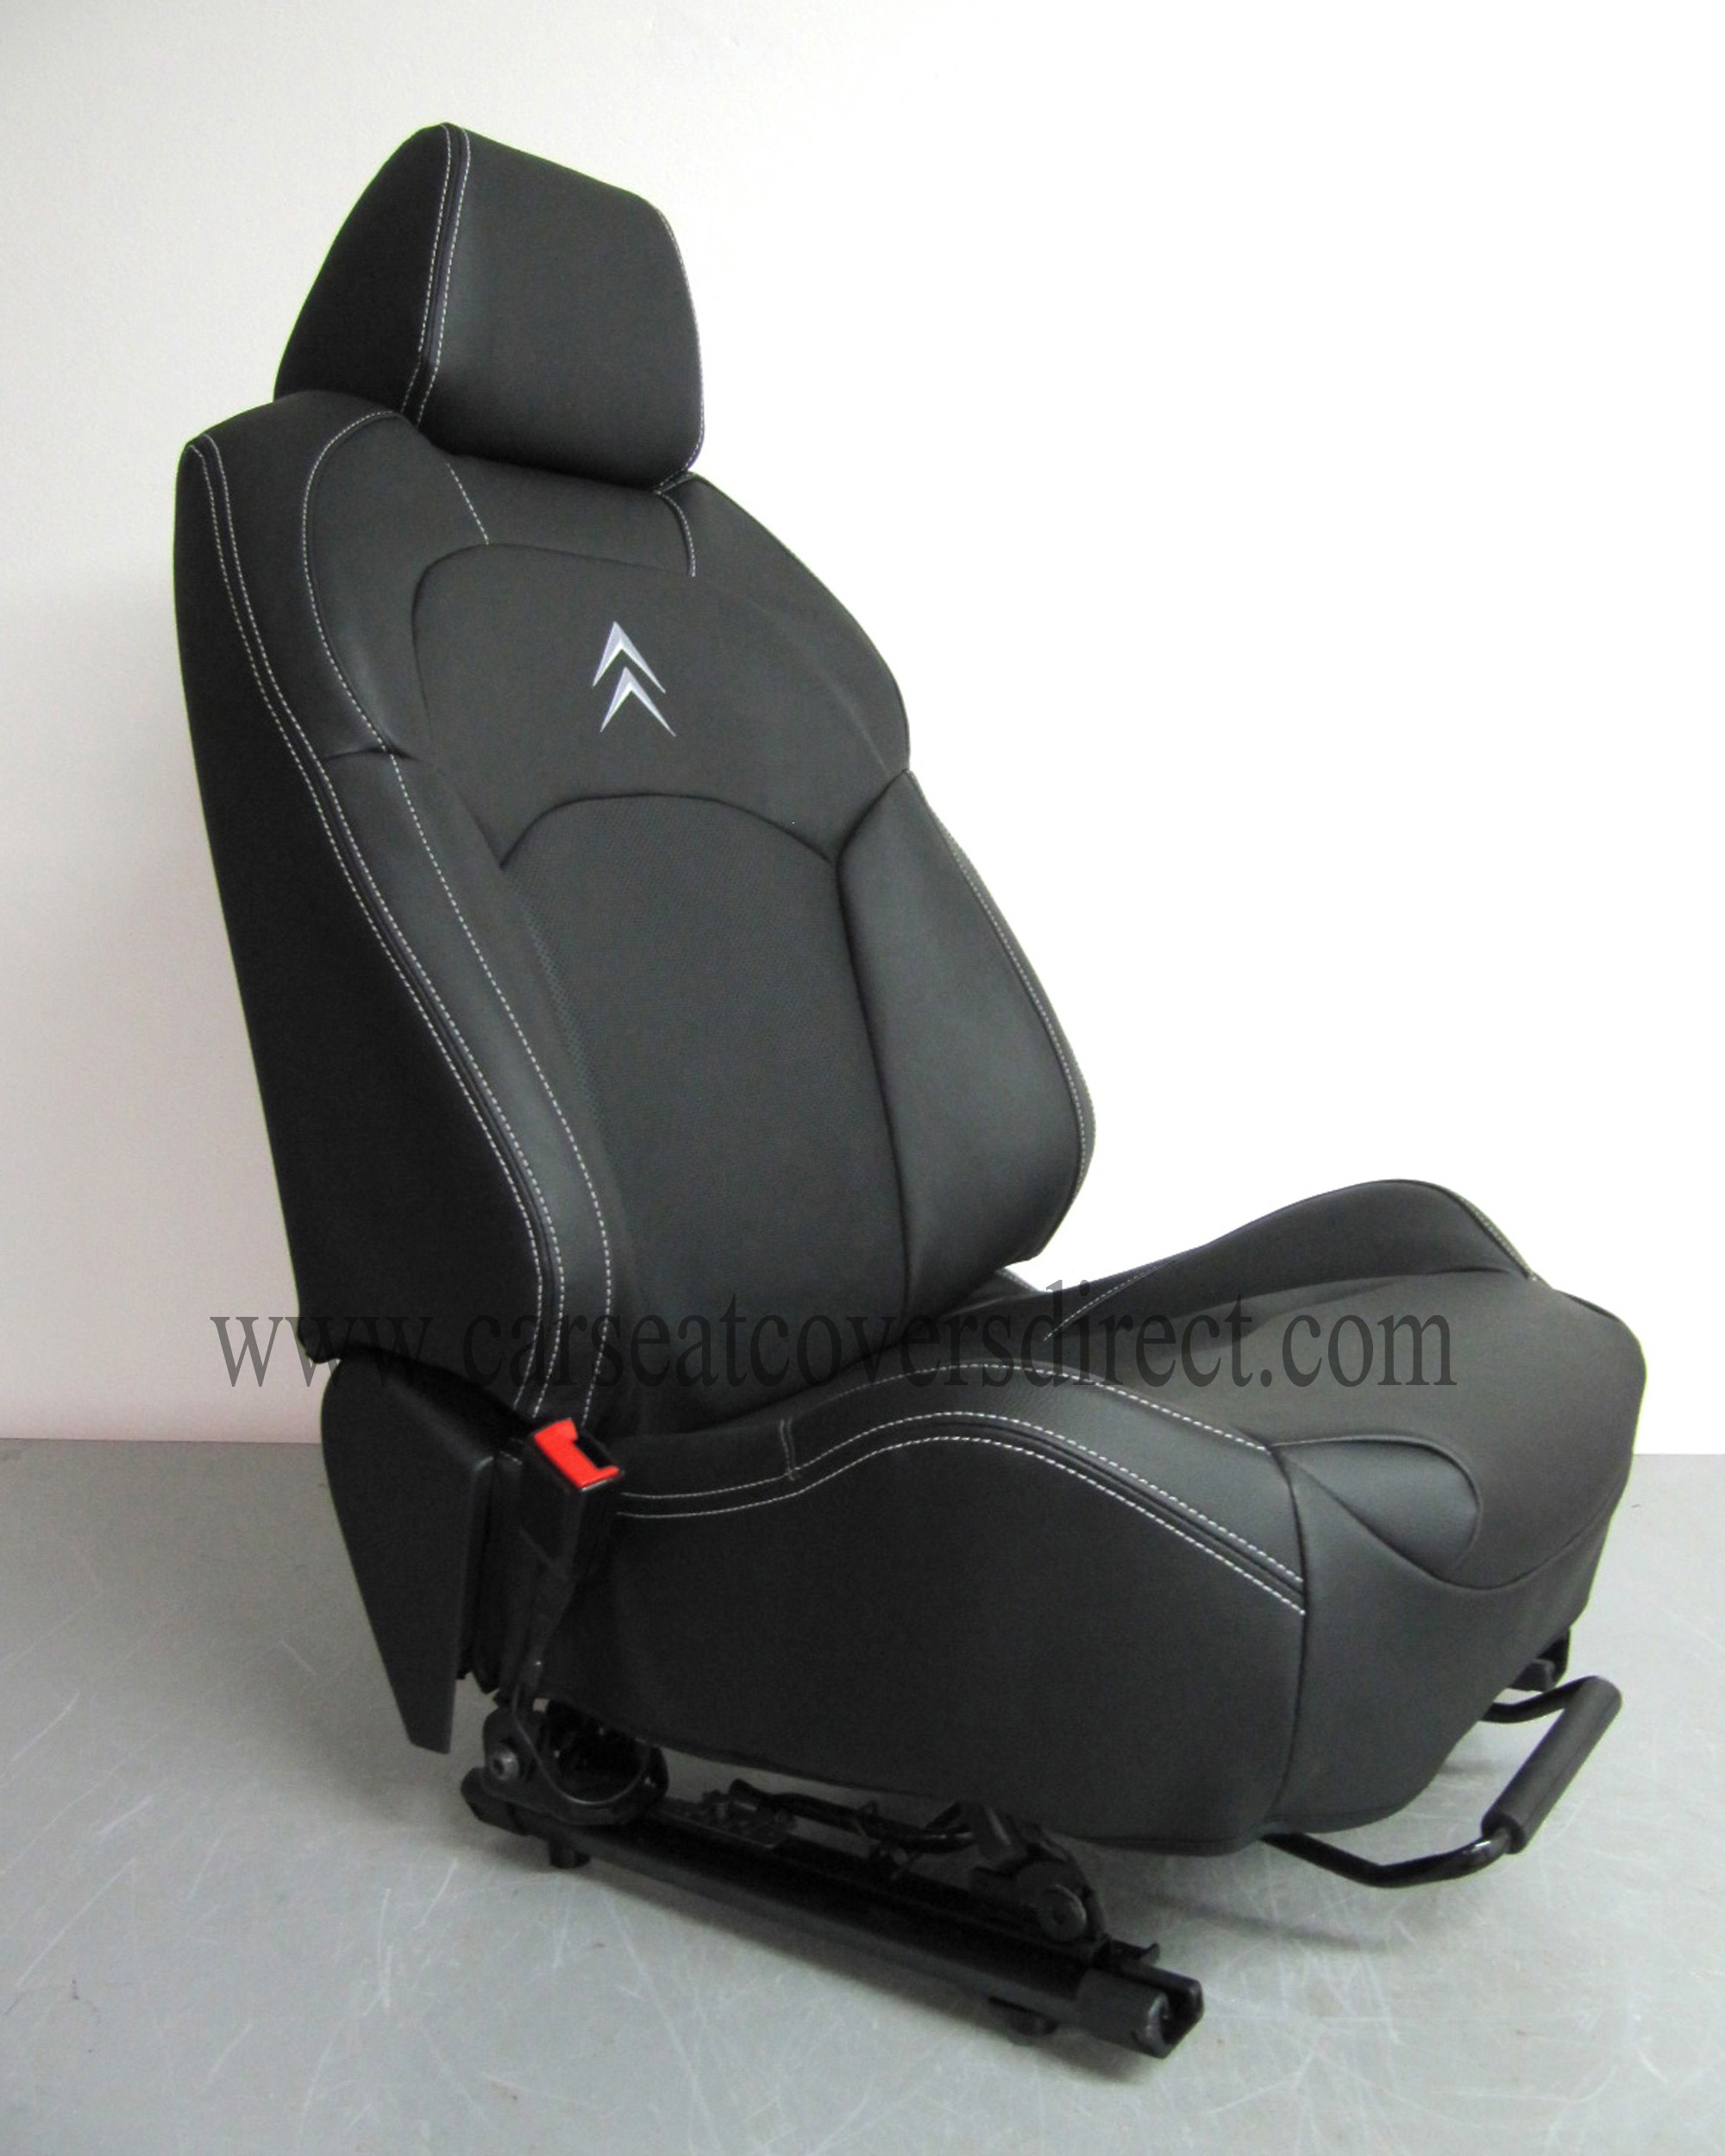 CITROEN C5 Seat Covers Car Seat Covers Direct